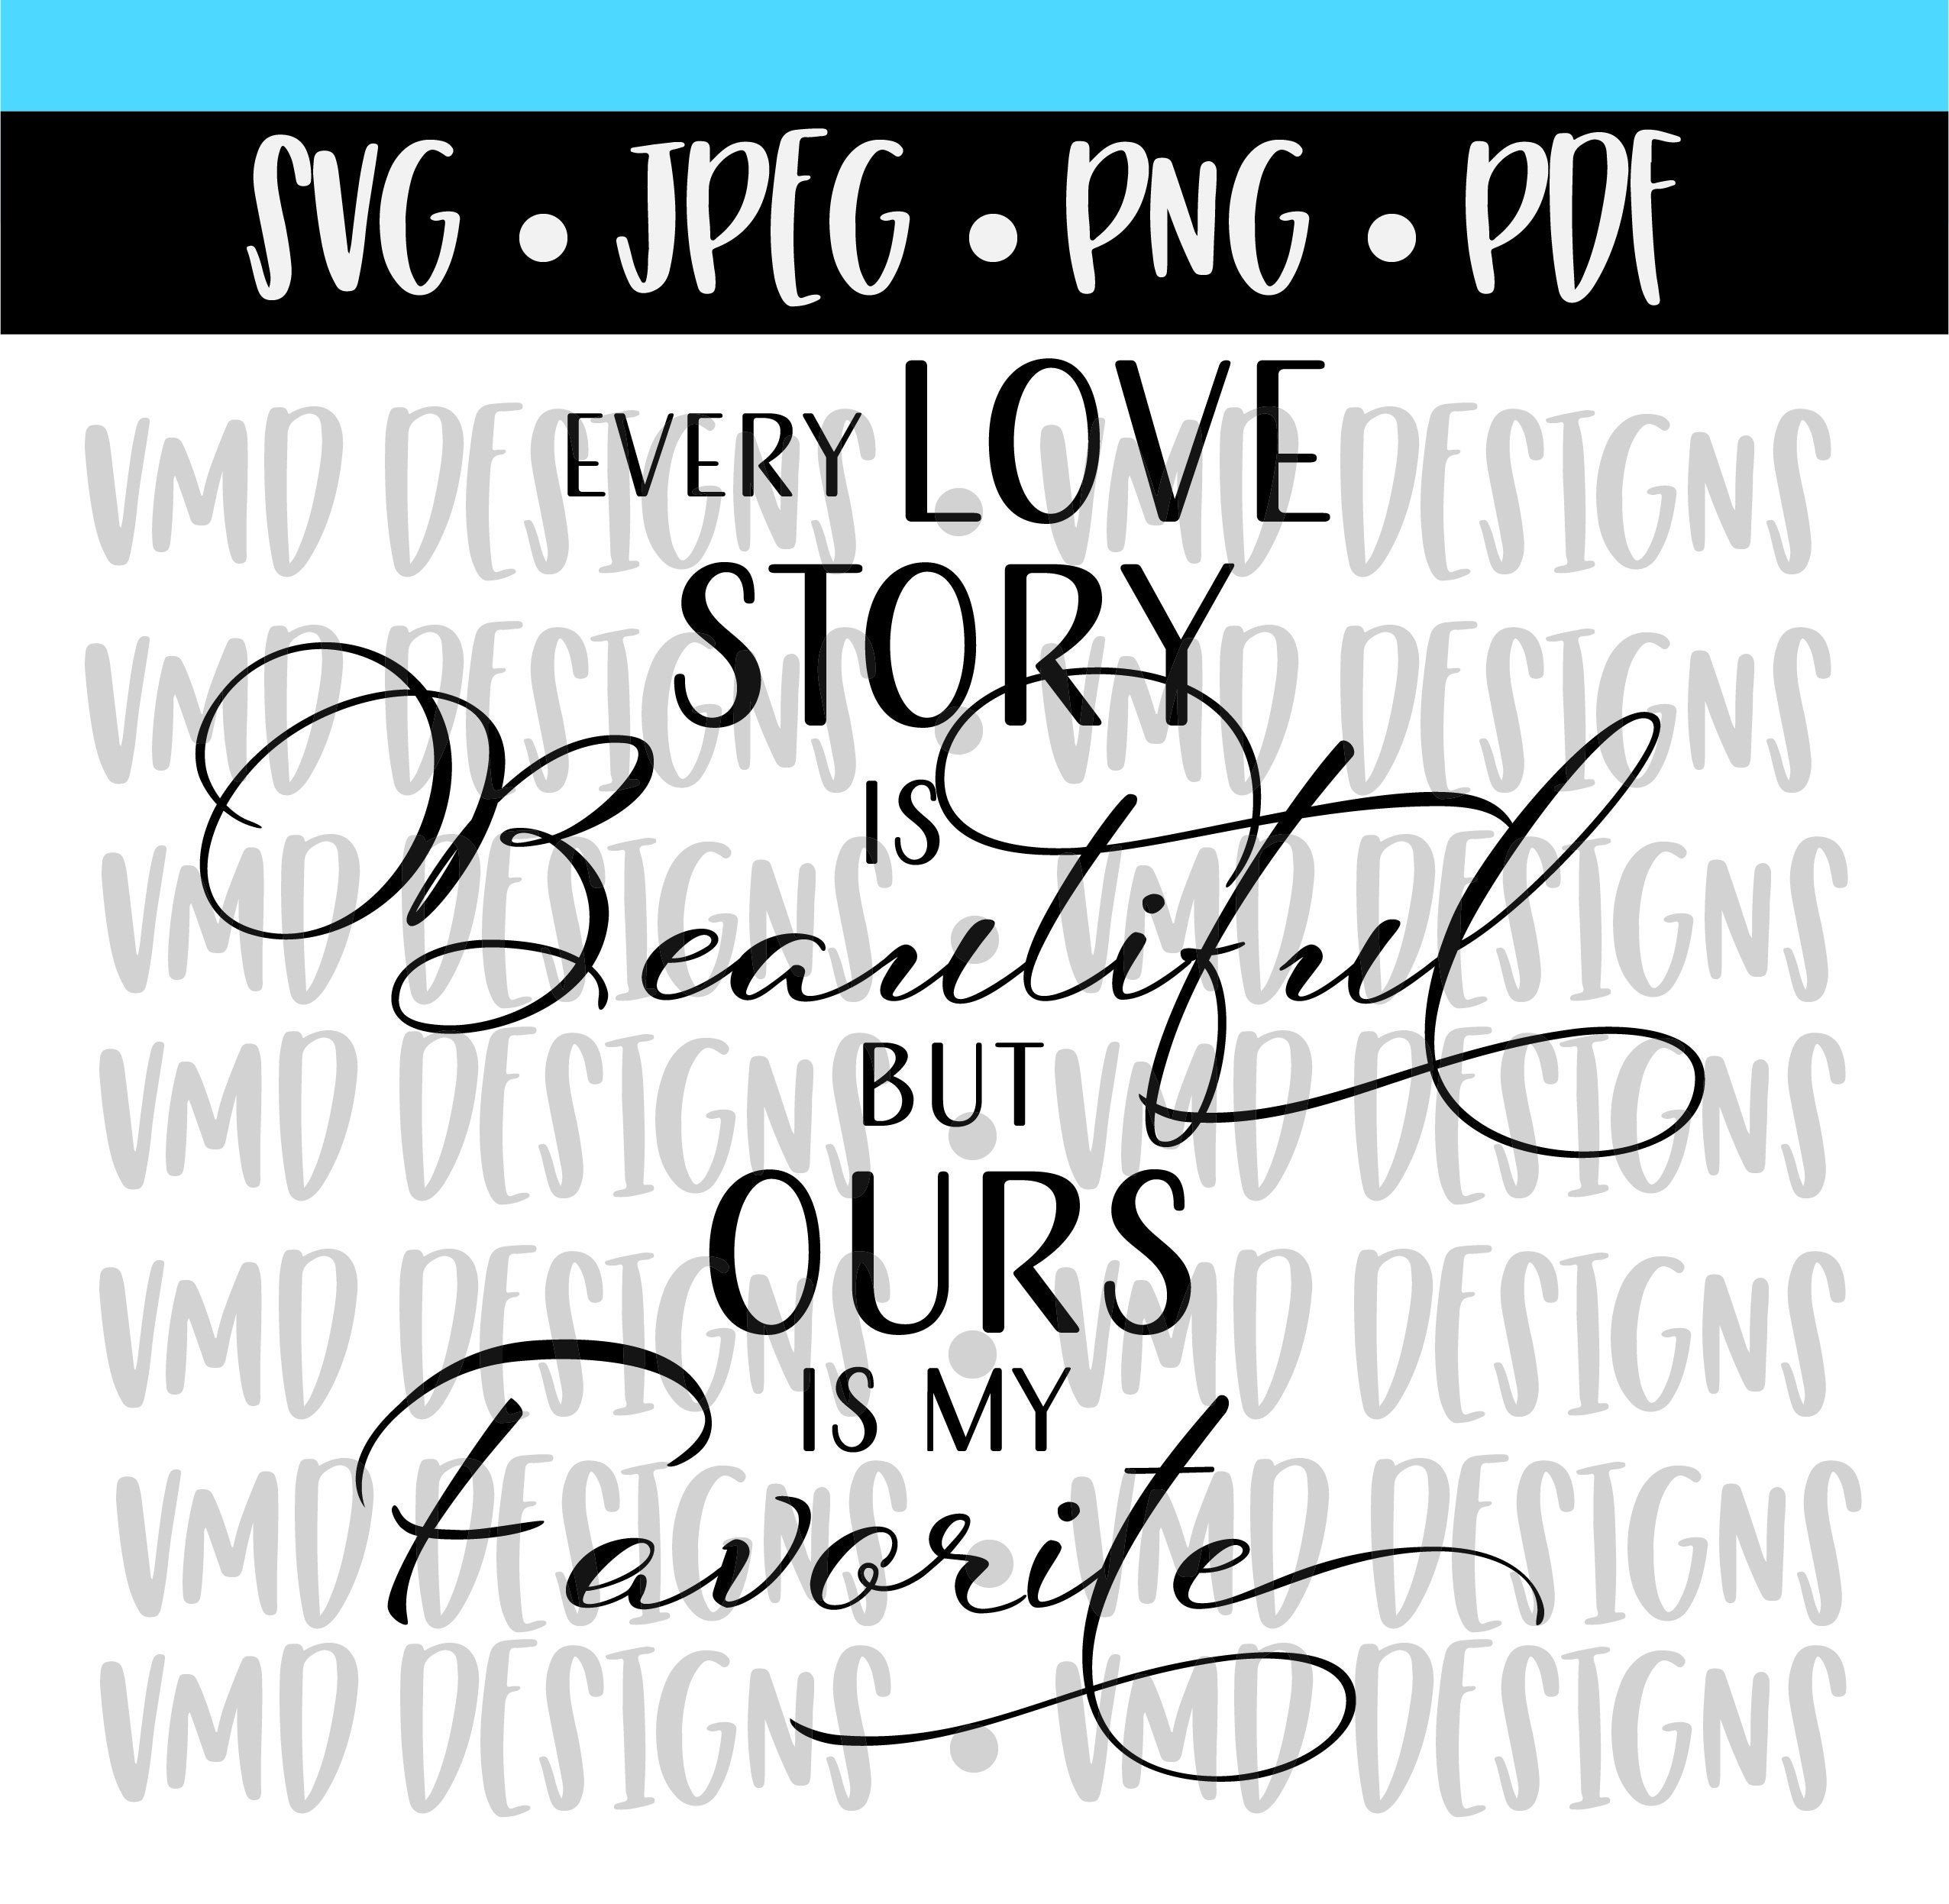 Every Love Story Is Beautiful But Ours Is My Favorite Jpg Png Etsy In 2021 Love Story Love Design My Favorite Things